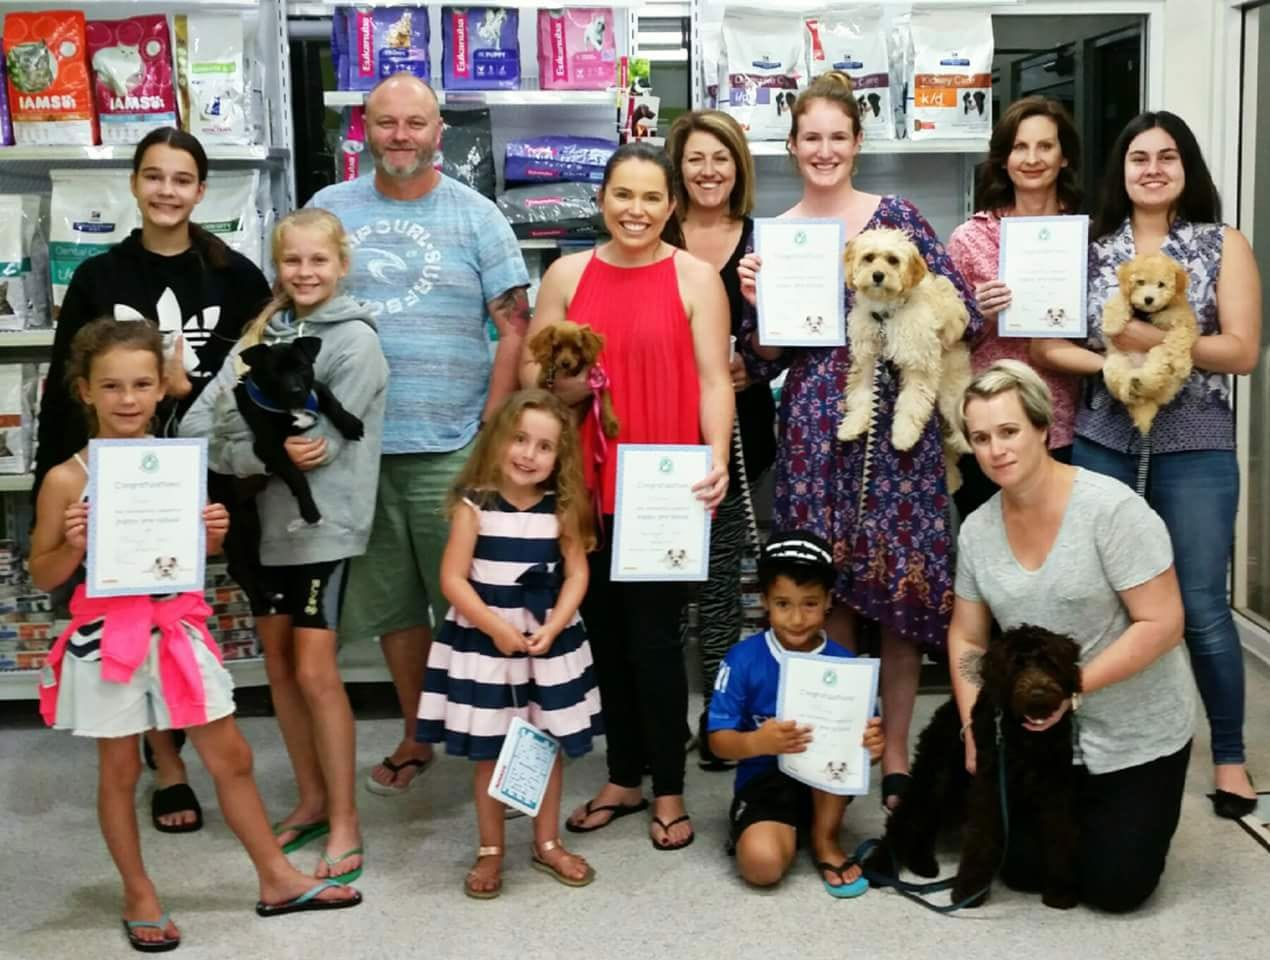 All Terrigal Vet Puppy Pre-School graduates learn important socialisation skills and develop basic manners like sit and stay